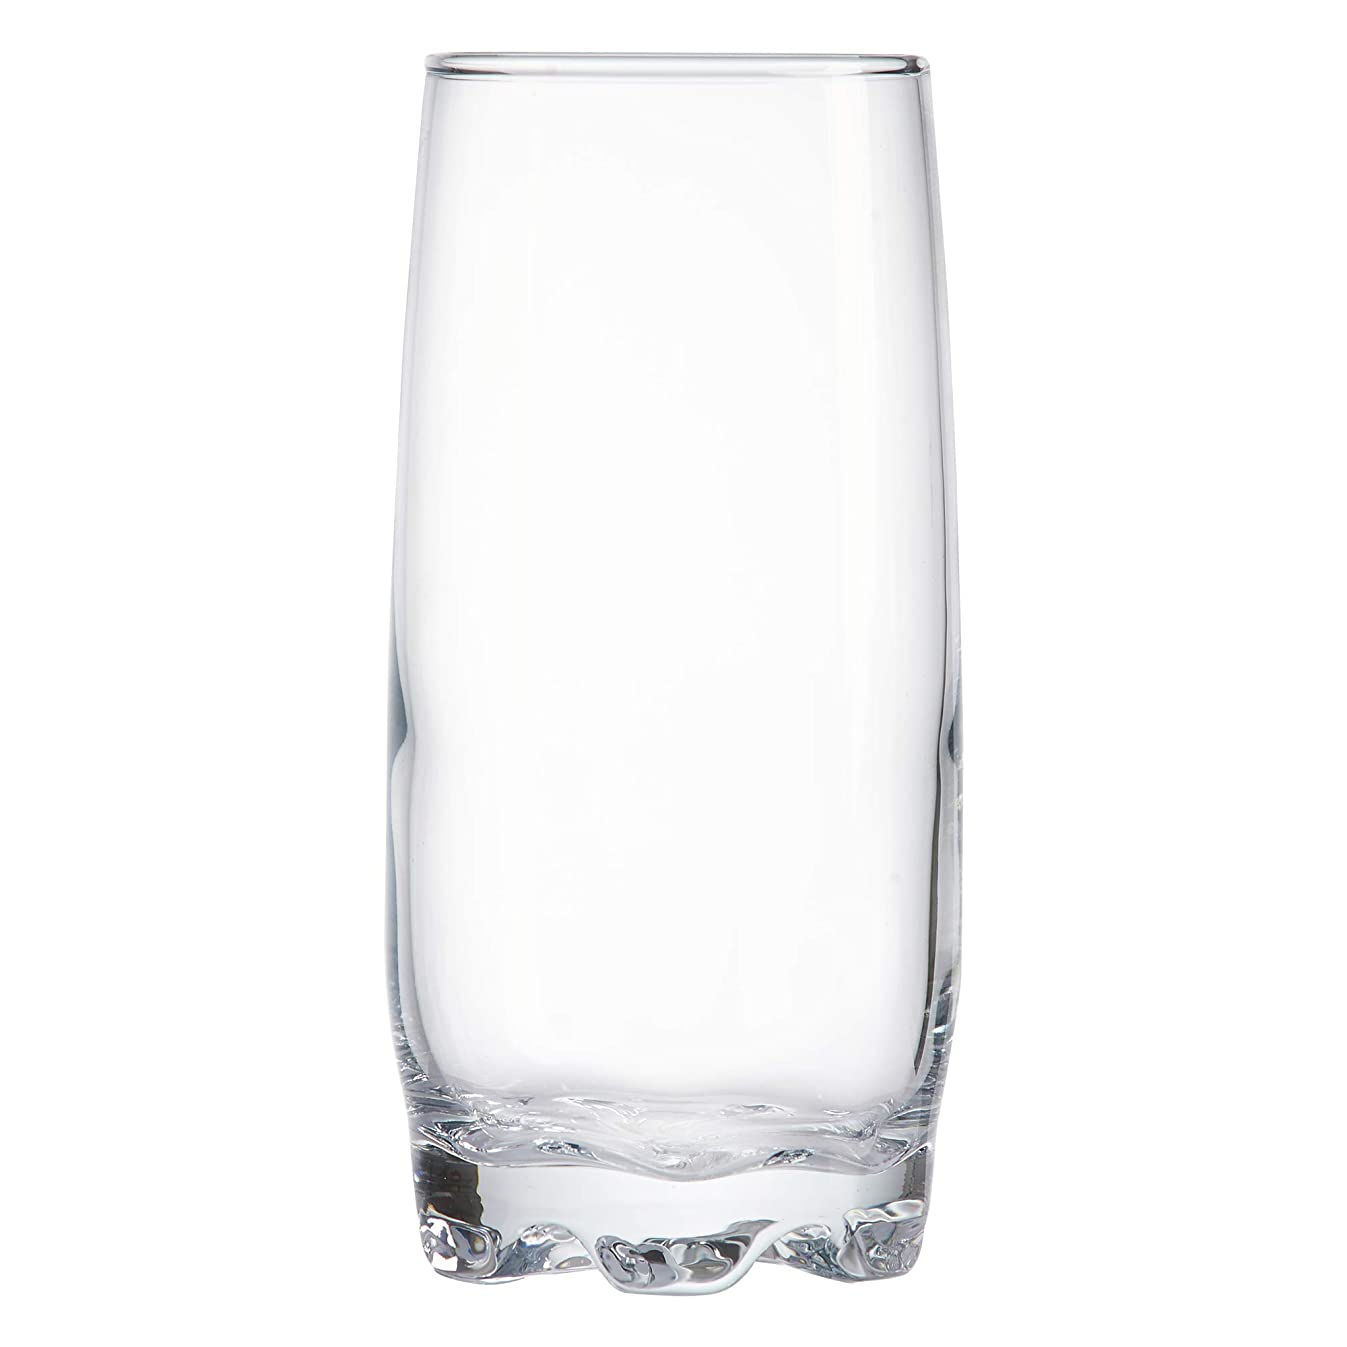 Ravenhead 0040.457 Essentials Sleeve 4 Hobnob Hiballs 39cl, Glassware